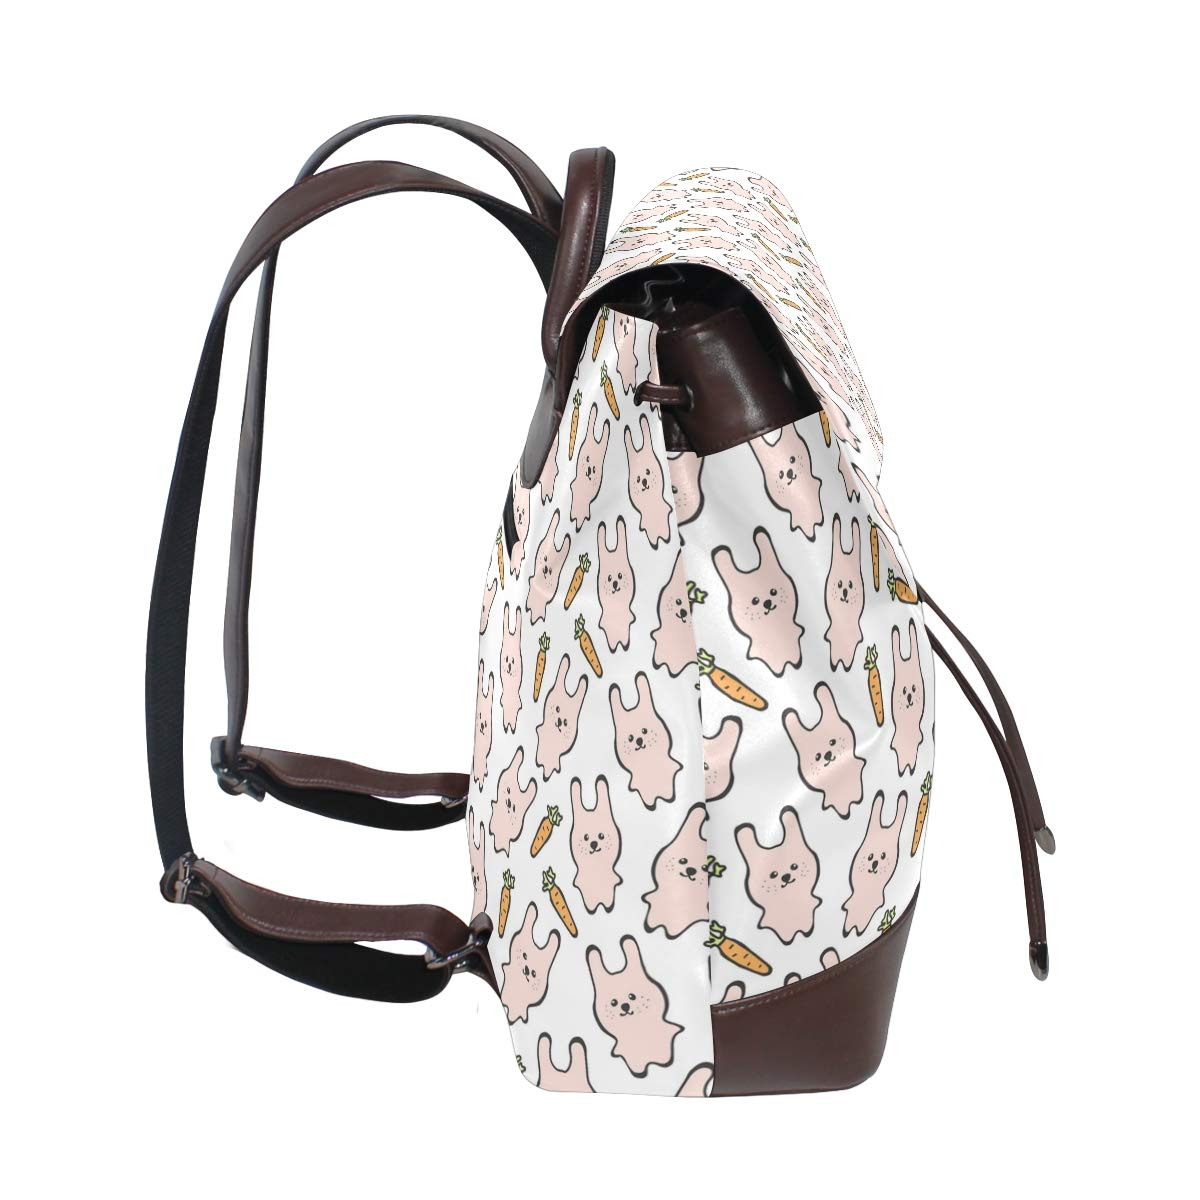 Leather Cute Pink Rabbit Bunny Wth Carrots Backpack Daypack Elegant Ladies Travel Bag Women Men